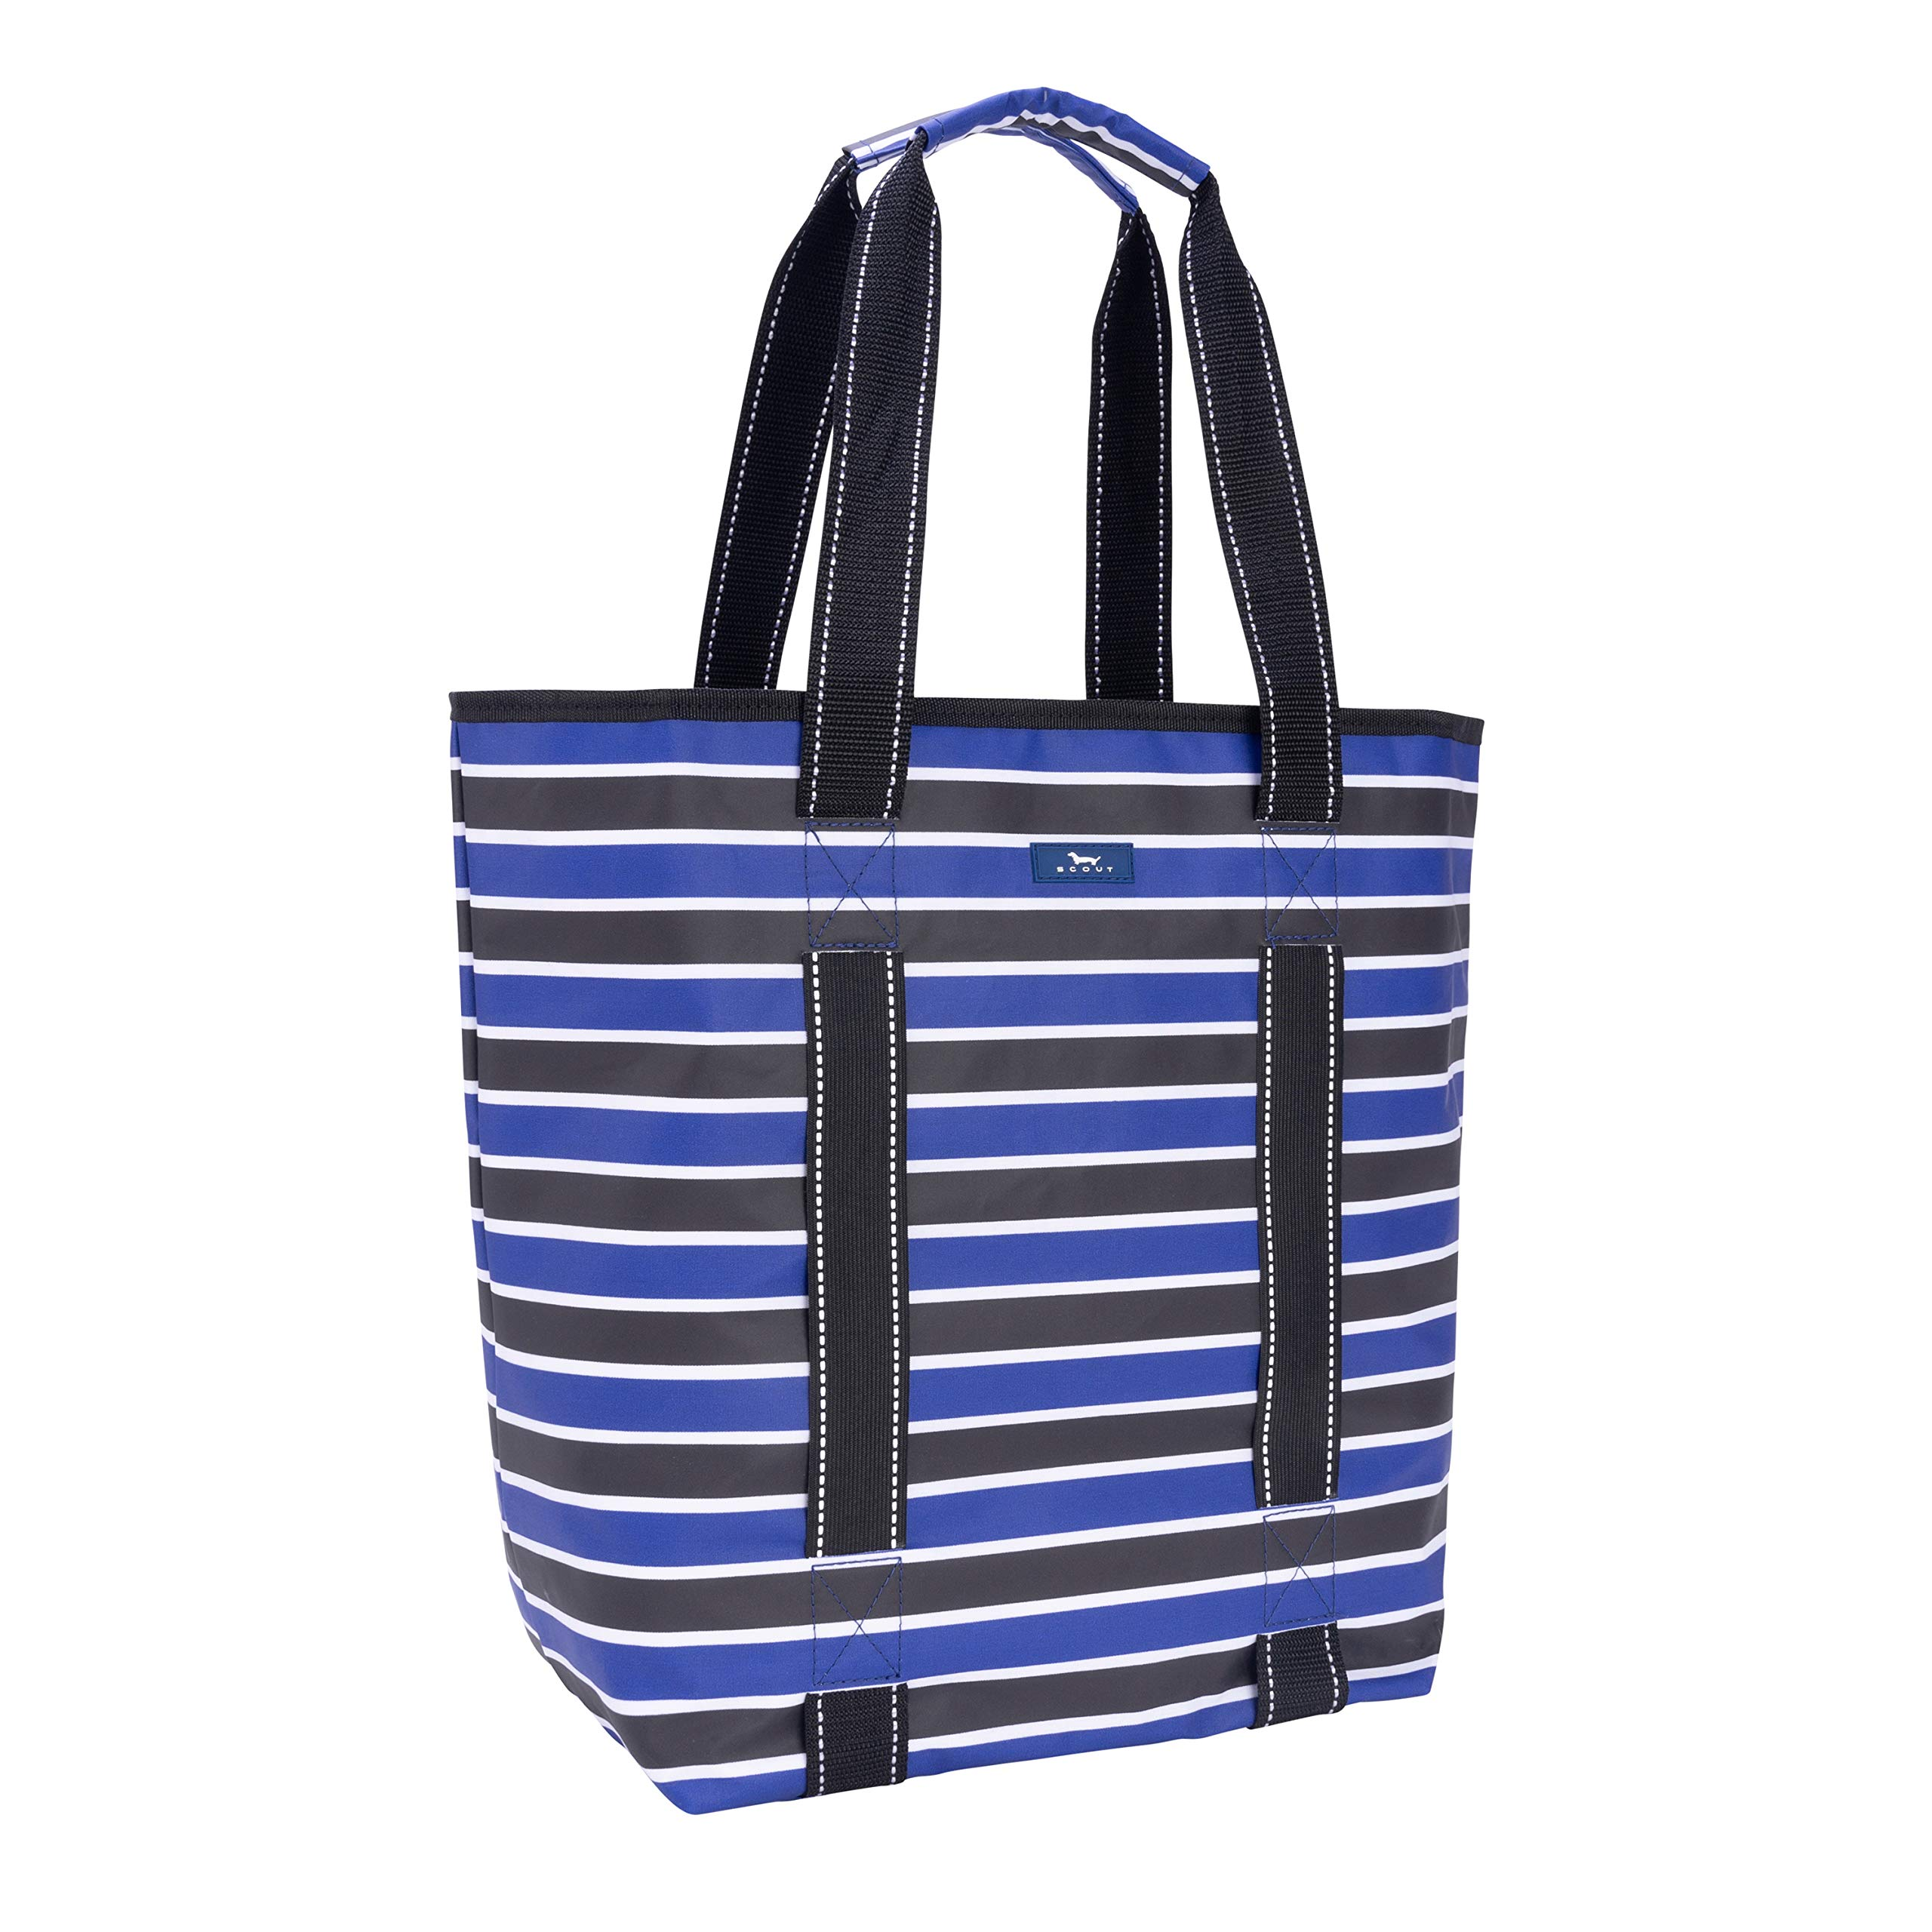 SCOUT Fit Kit Gym Tote Bag, Elastic Band Fits Yoga Mat or Towel, Water Resistant, Zips Closed, Bolder and Wiser